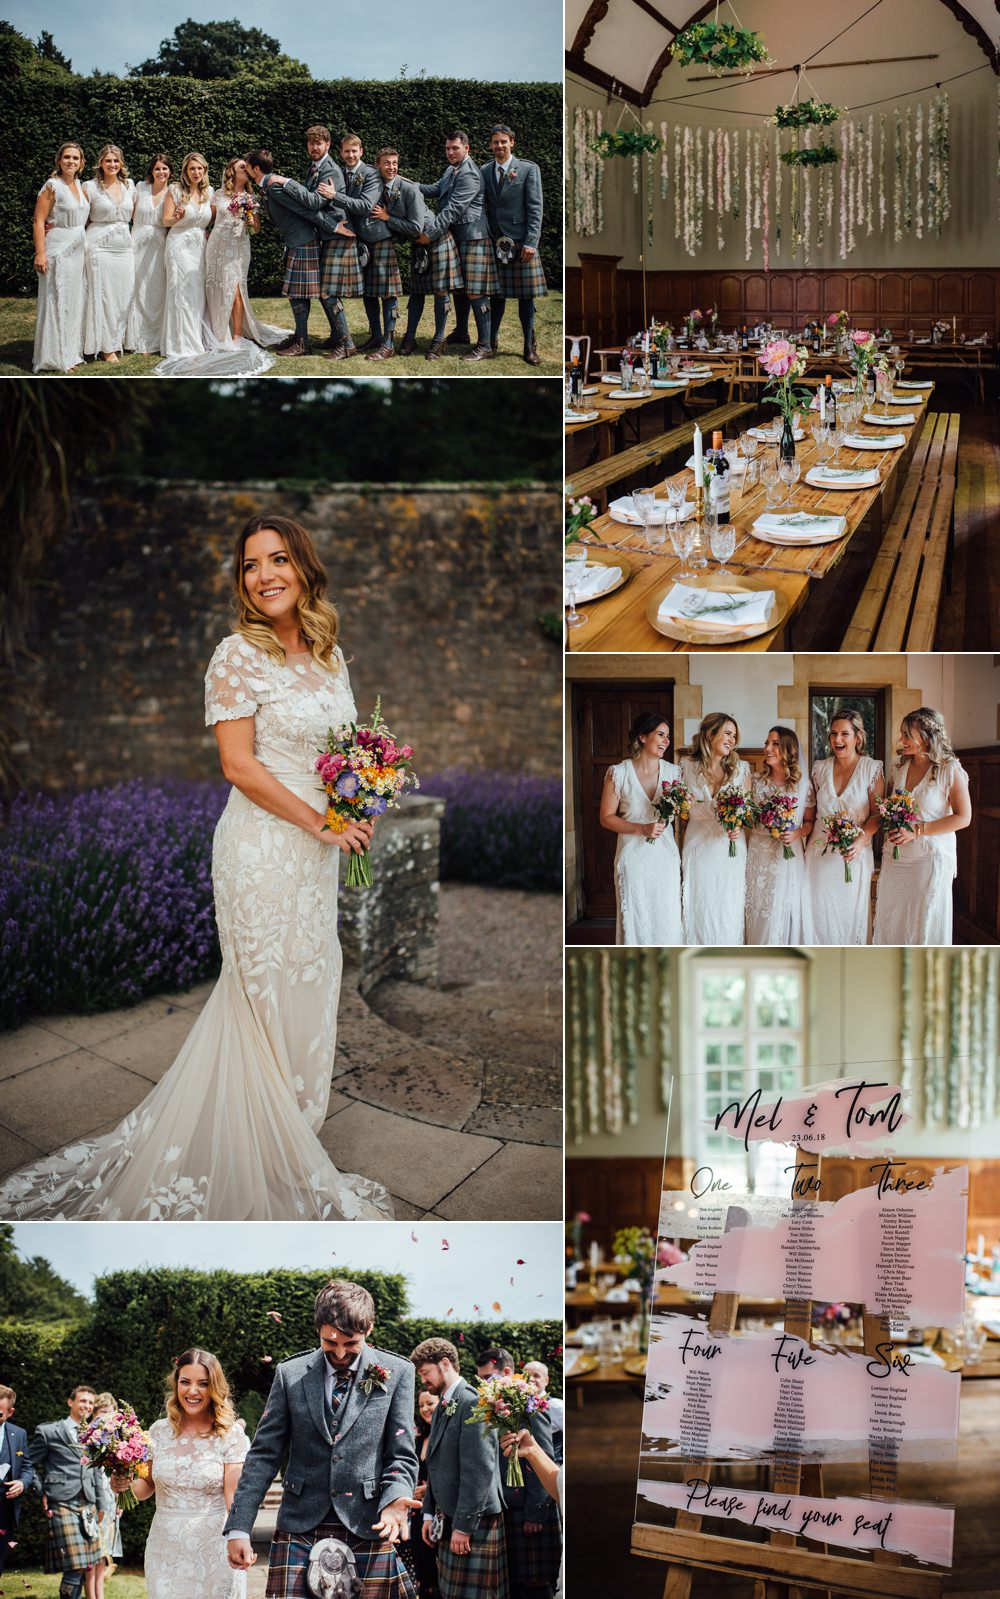 Modern Rustic & Cool Party Wedding The Shannons Photography